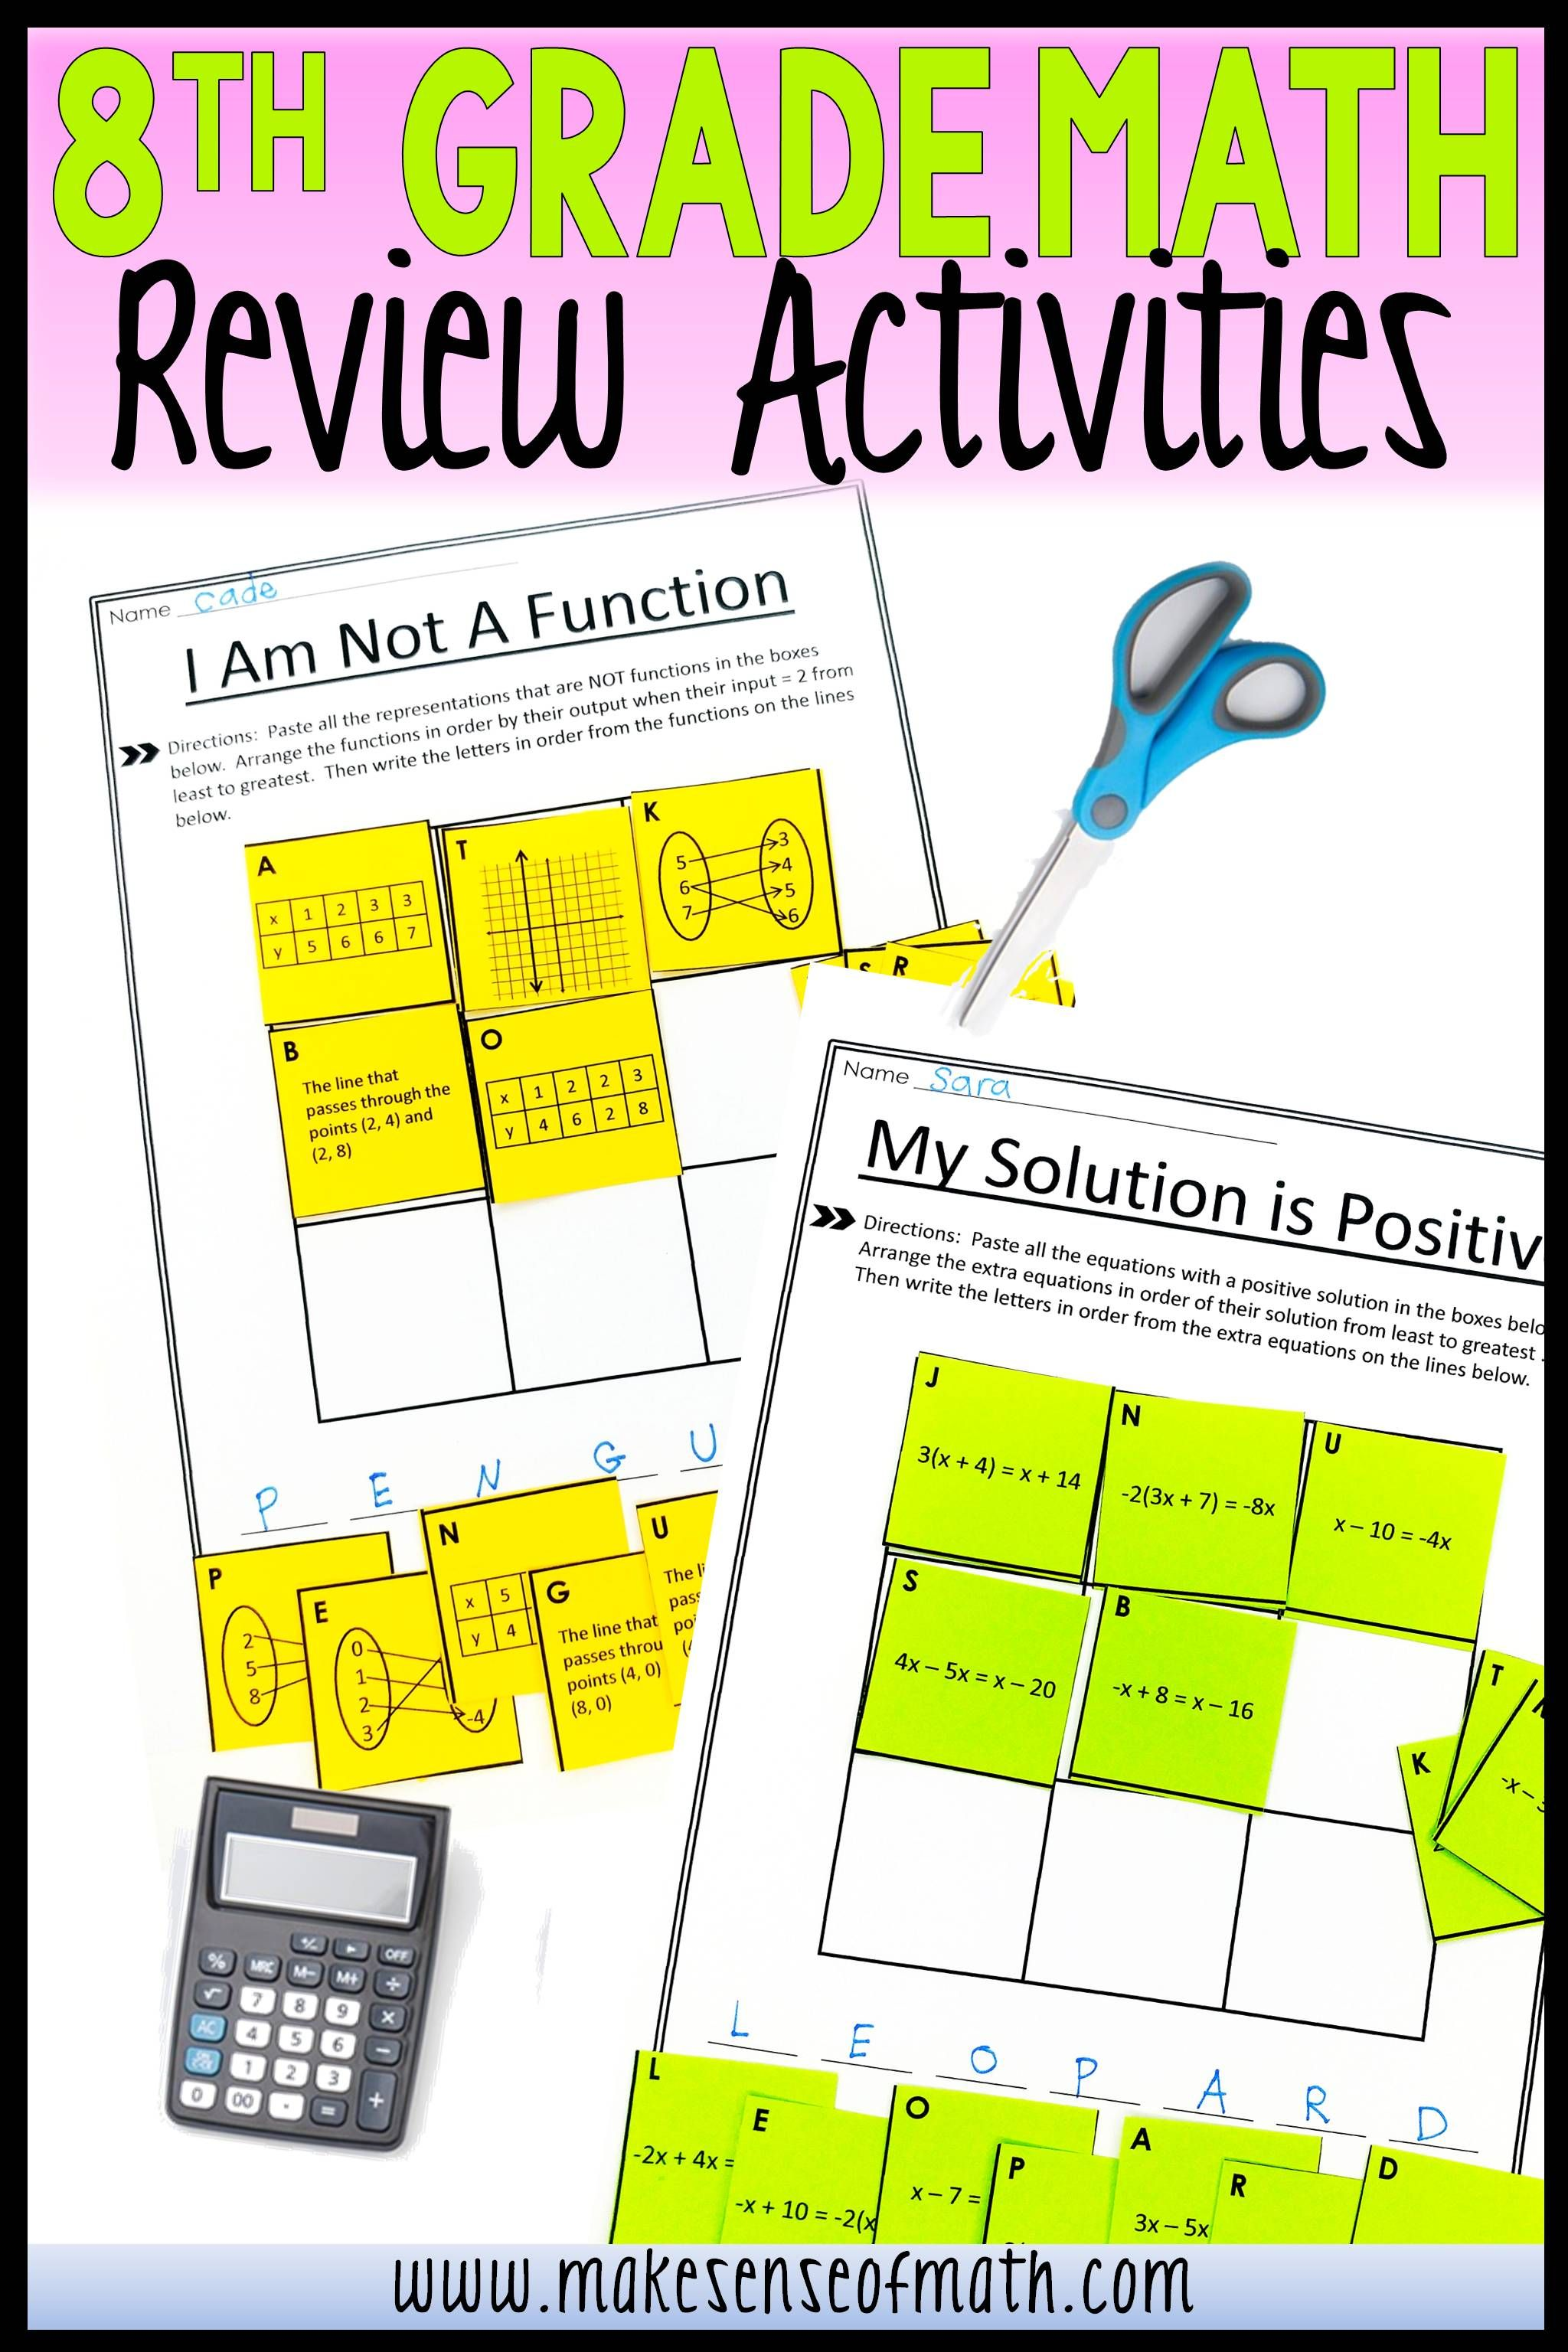 8th Grade Math Review Activities